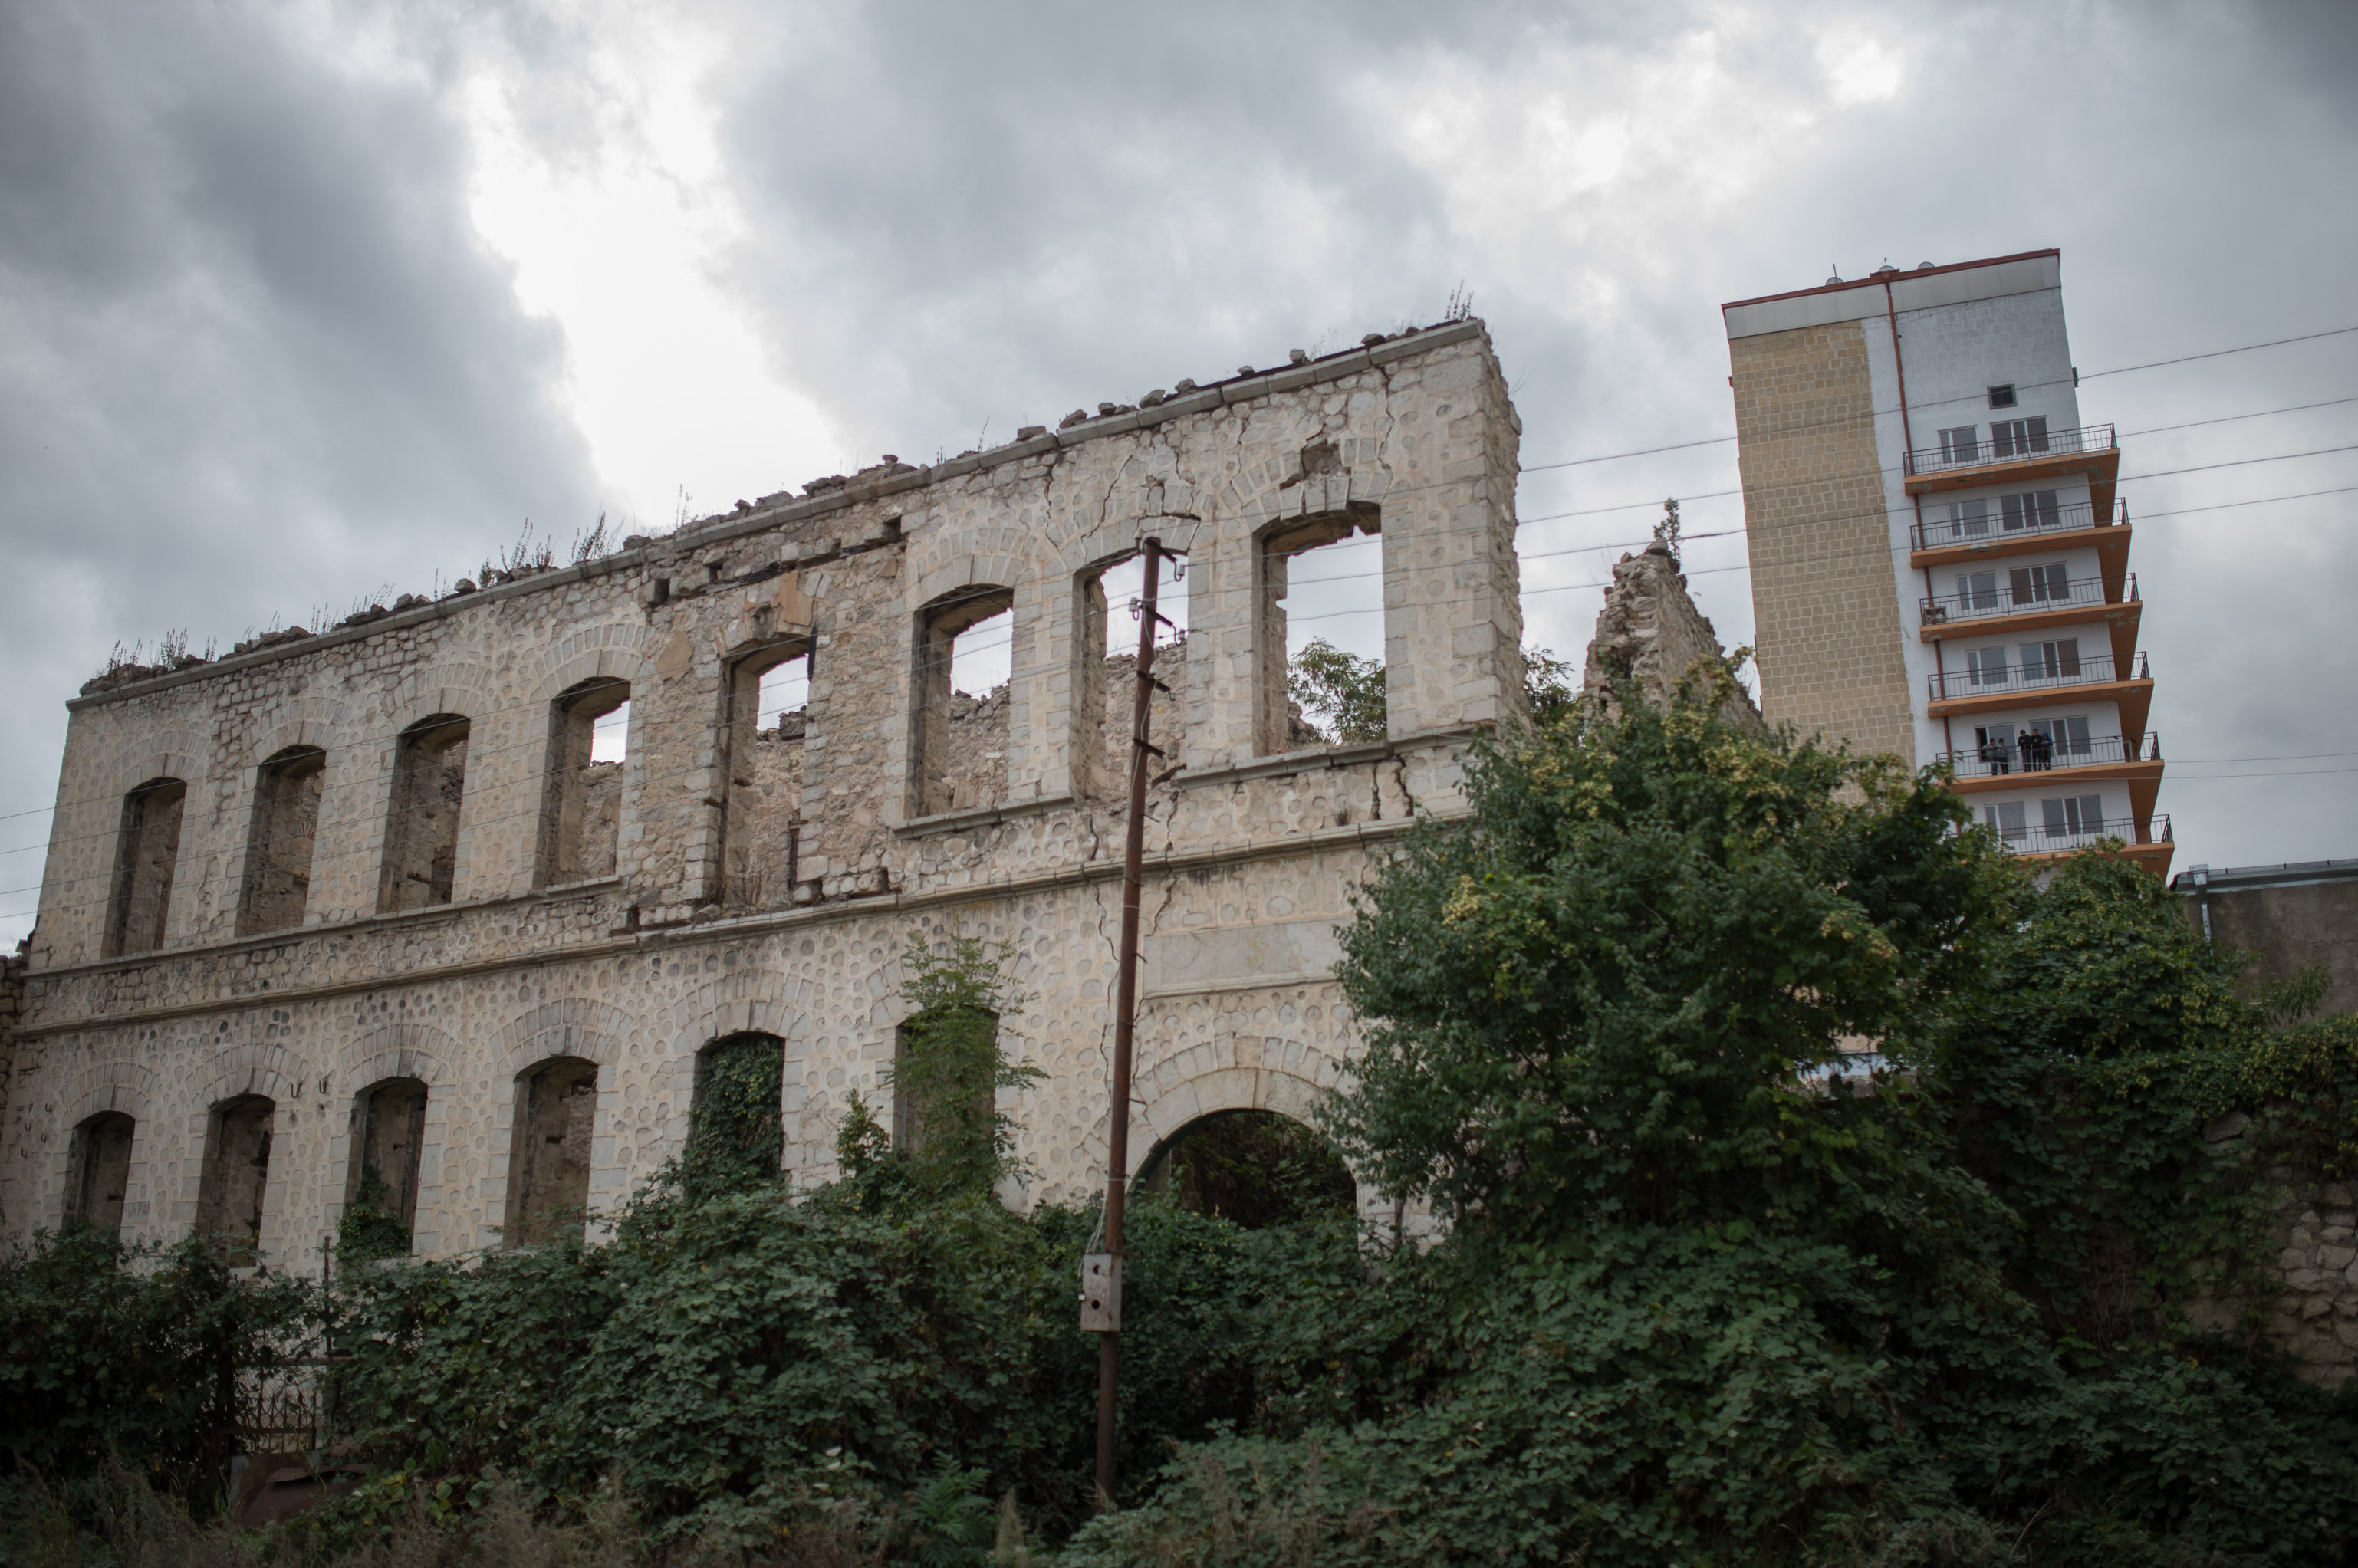 Houses destroyed during the war in the town of Shusha in the self-proclaimed Nagorno-Karabakh Republic